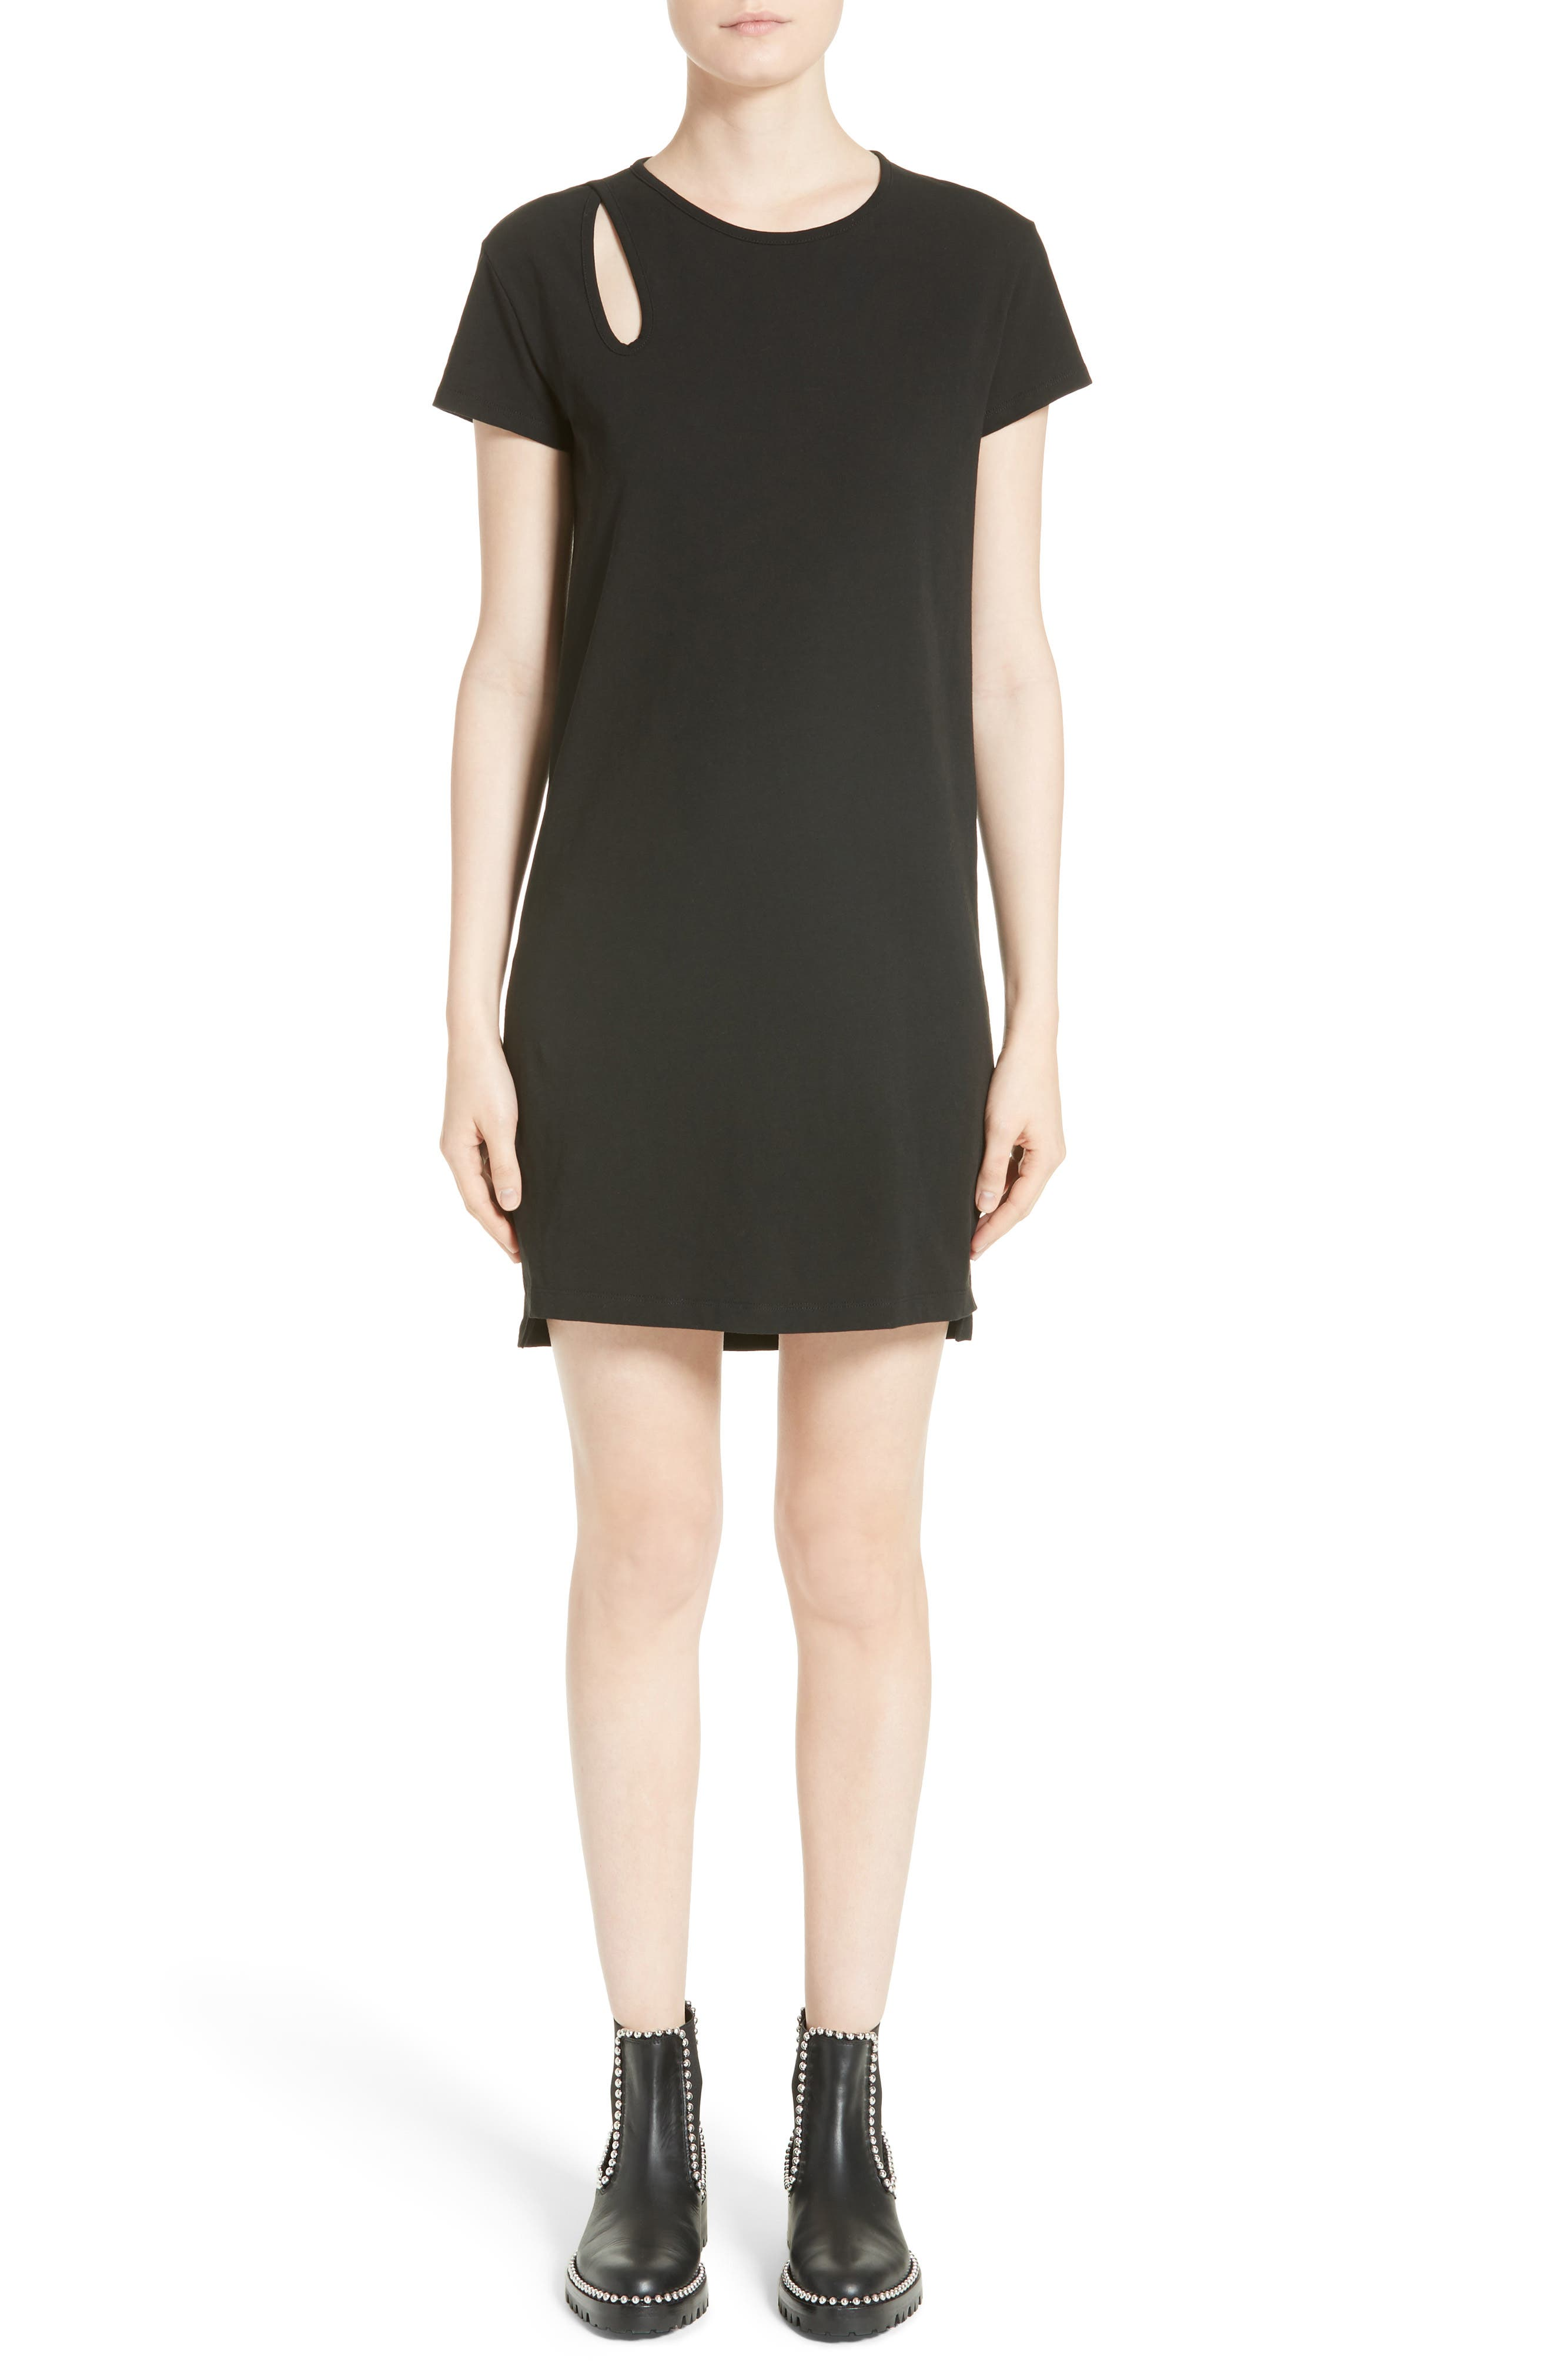 T by Alexander Wang Teardrop Cutout Dress